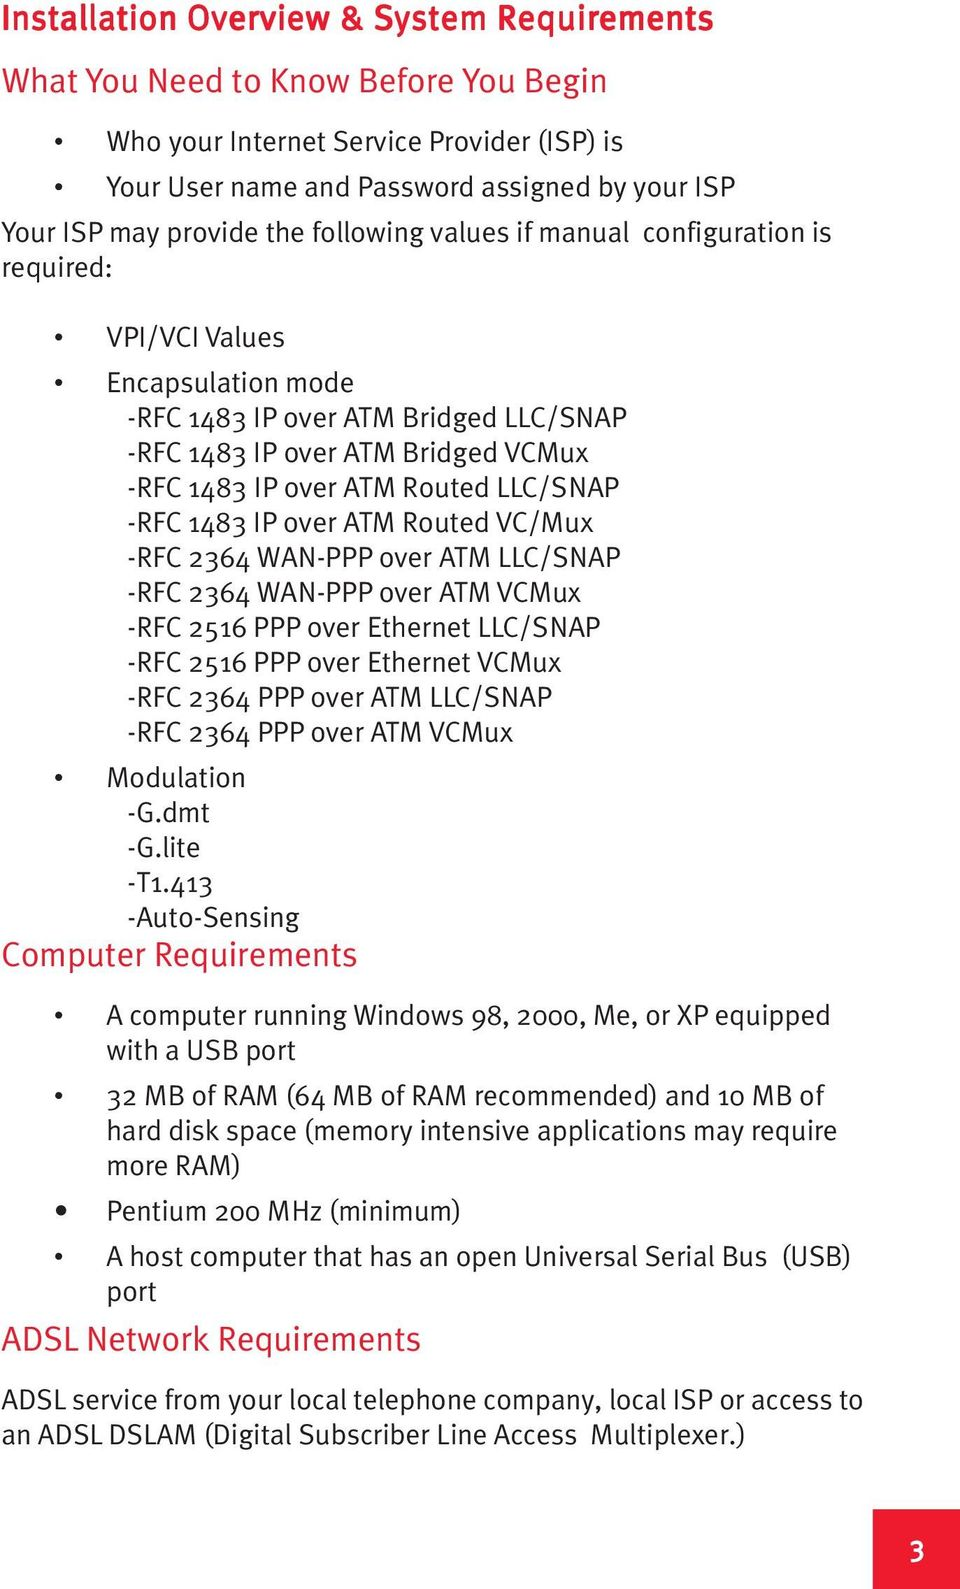 ATM Routed LLC/SNAP -RFC 1483 IP over ATM Routed VC/Mux -RFC 2364 WAN-PPP over ATM LLC/SNAP -RFC 2364 WAN-PPP over ATM VCMux -RFC 2516 PPP over Ethernet LLC/SNAP -RFC 2516 PPP over Ethernet VCMux